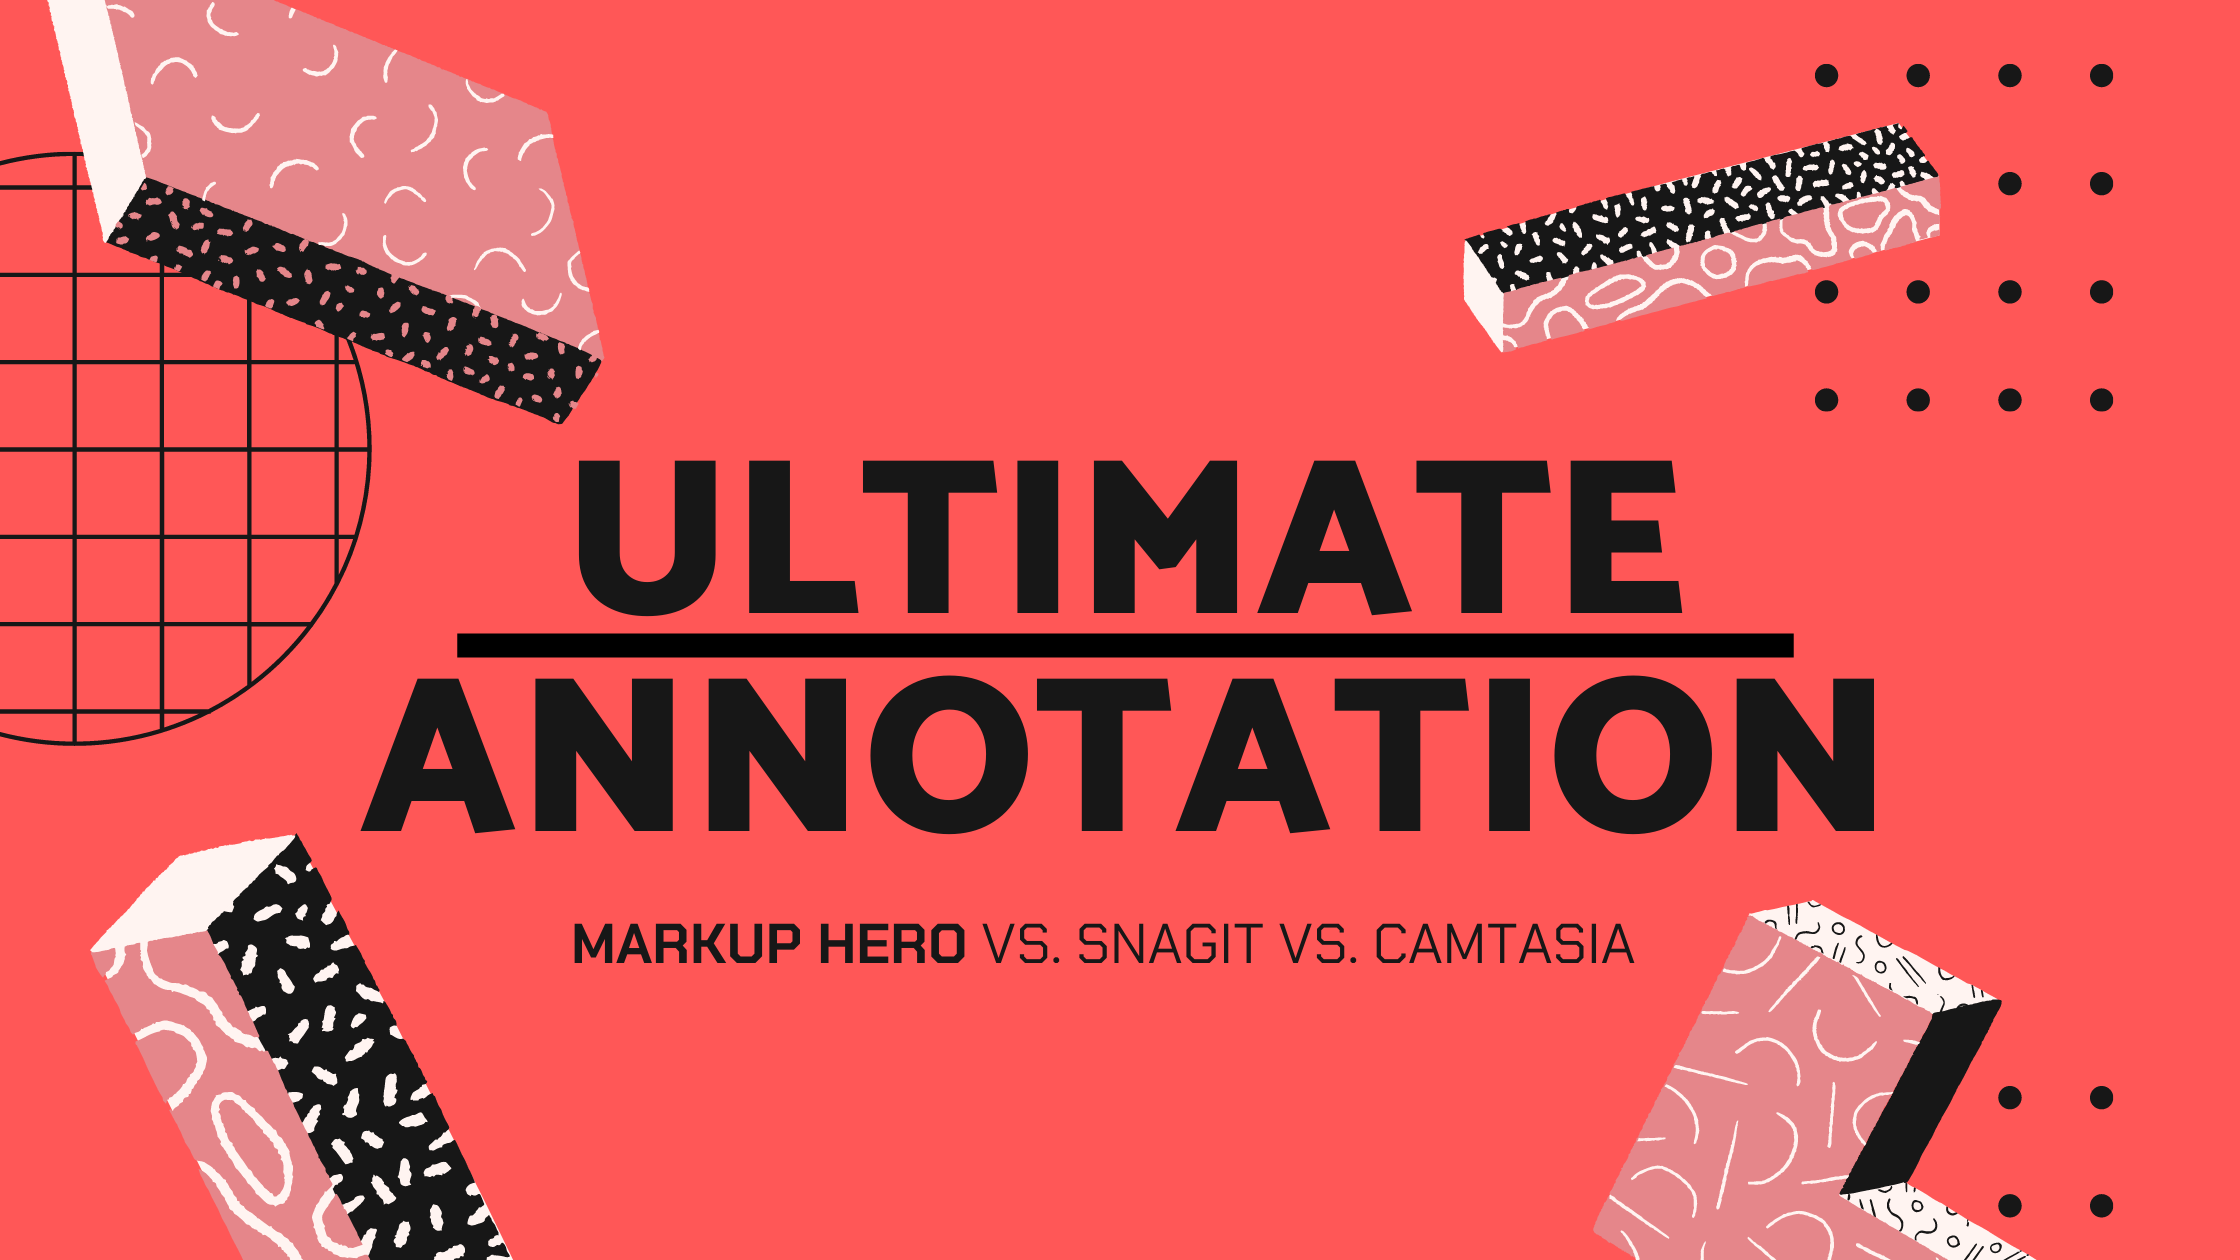 Snagit vs Camtasia vs Markup Hero